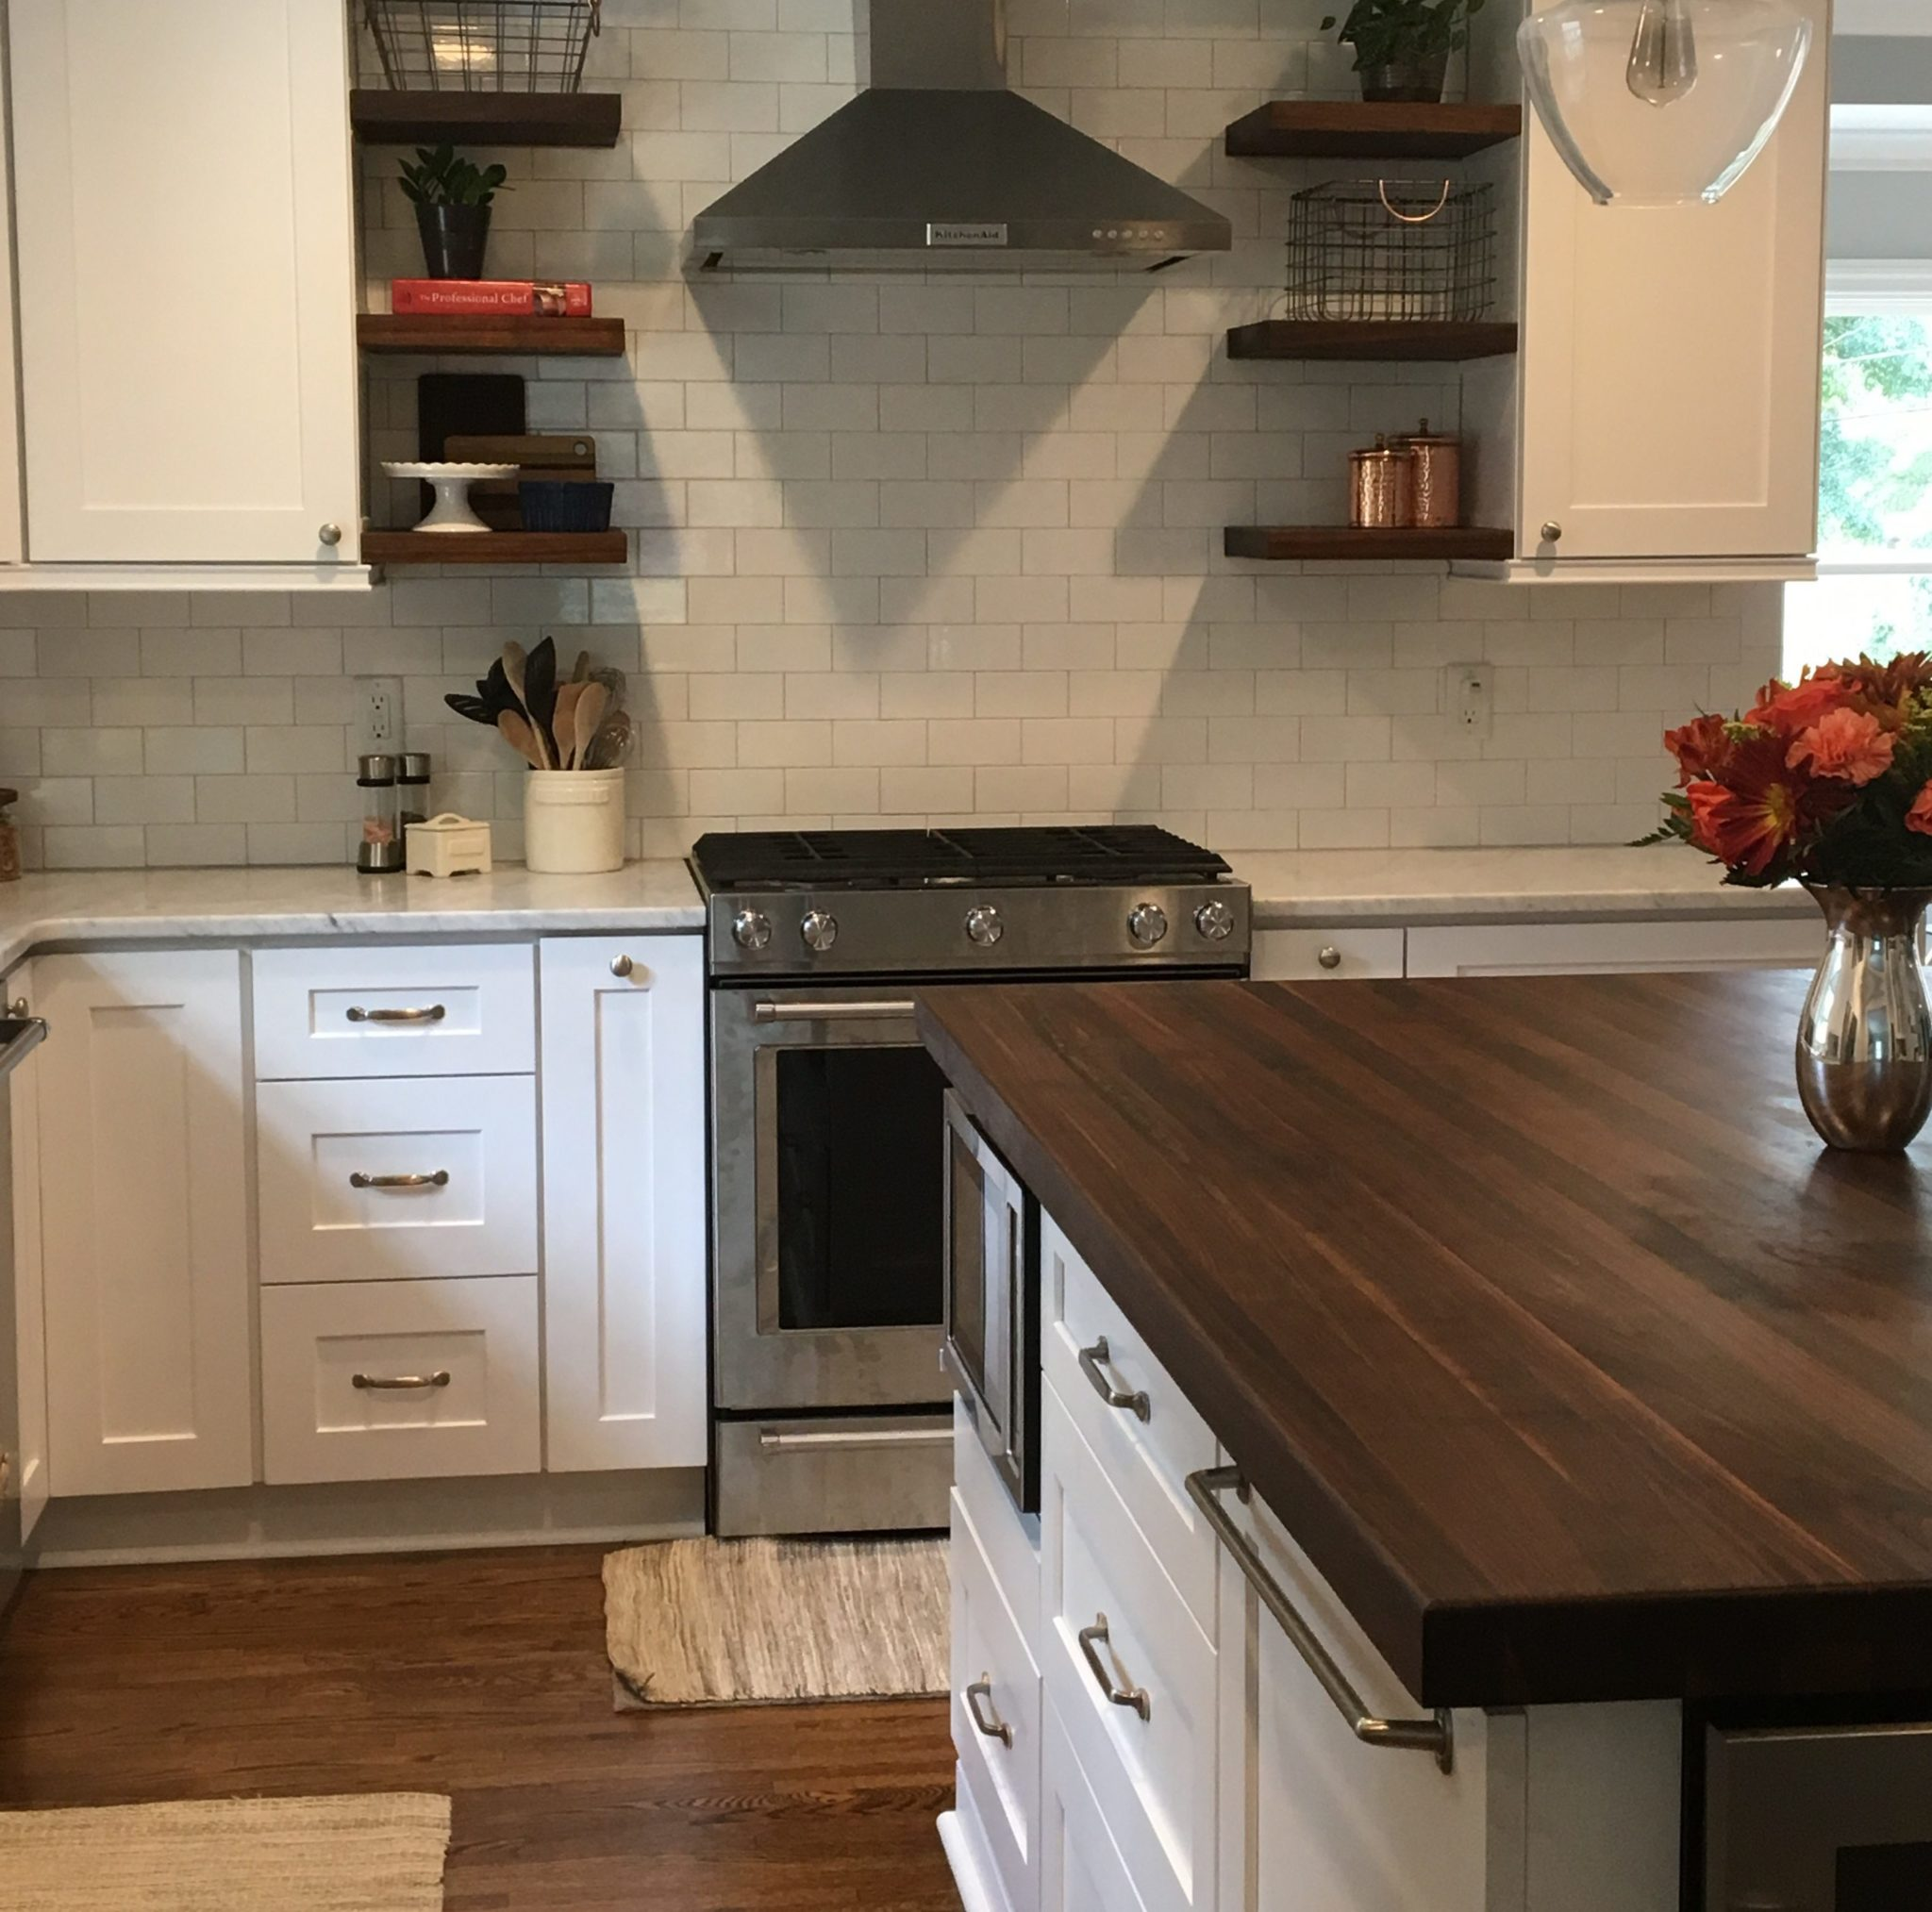 Tung Oil For Butcher Block Countertops Gallery Customer Submitted Images Walnut Wood Works